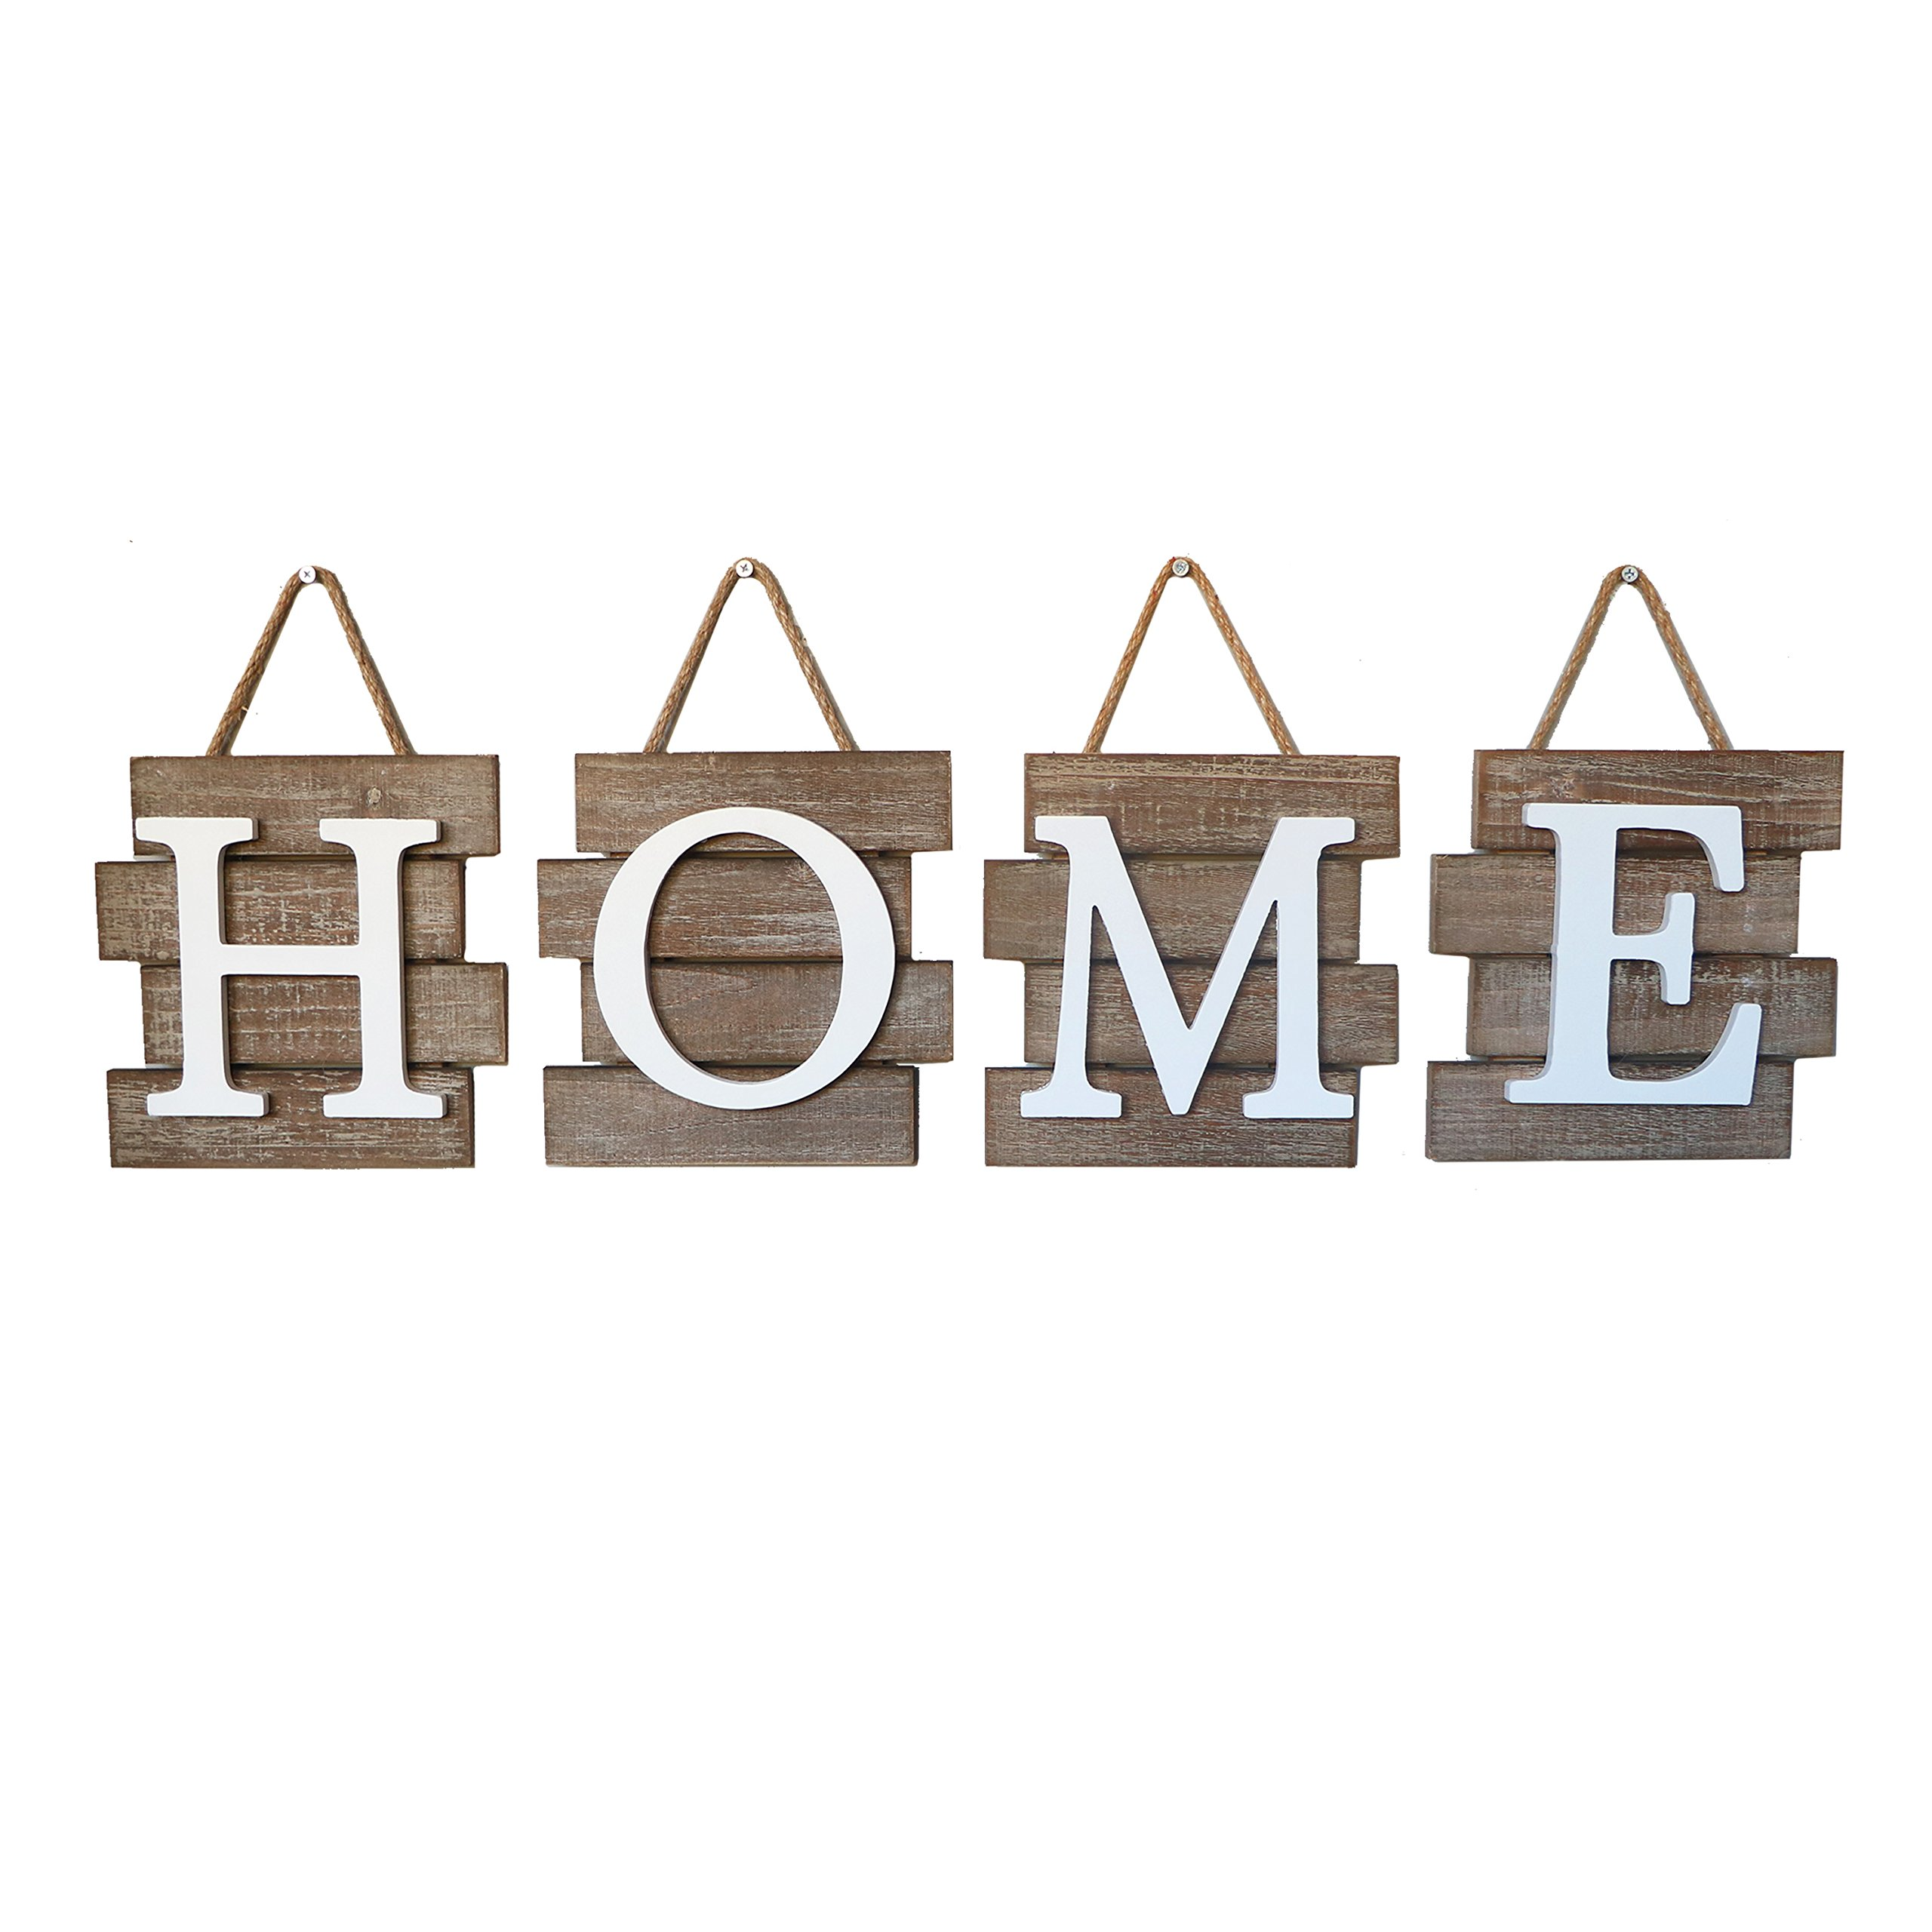 Barnyard Designs Home Tile Sign Wall Decor, Rustic Primitive Country Decorative Wall Art for Home and Kitchen 32'' x 8'' by Barnyard Designs